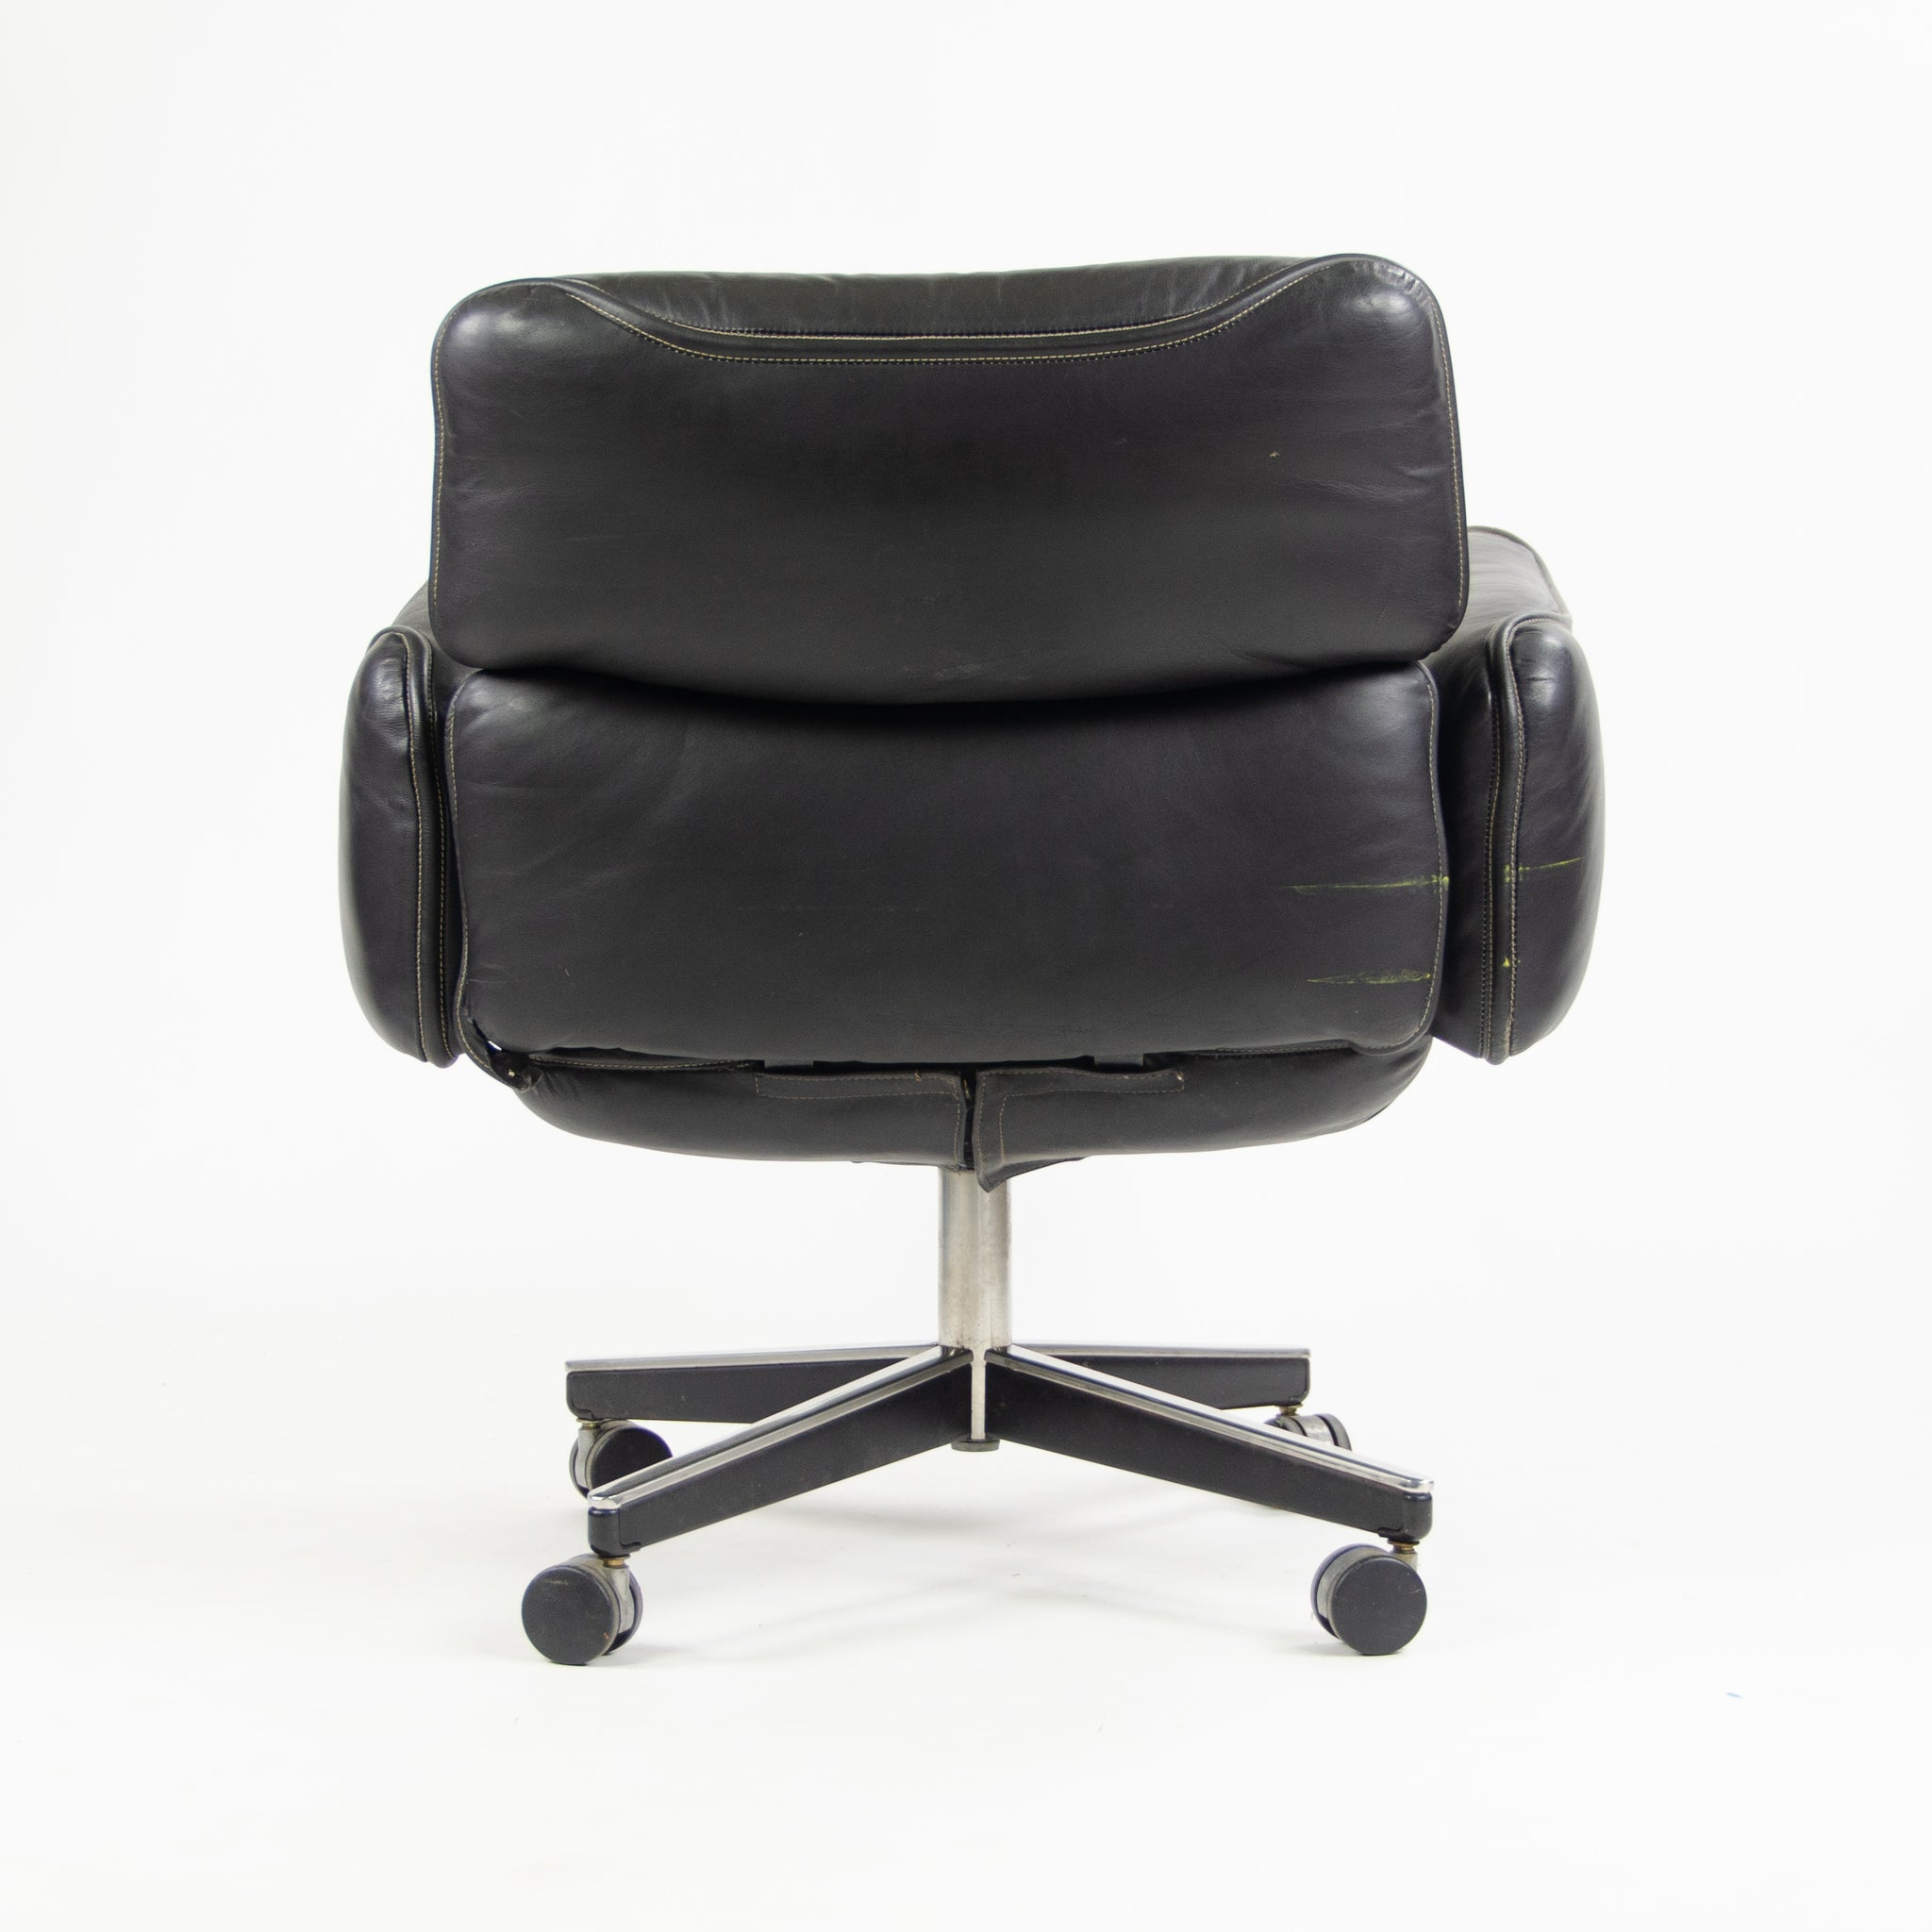 1970's Otto Zapf for Knoll Office Desk Chair